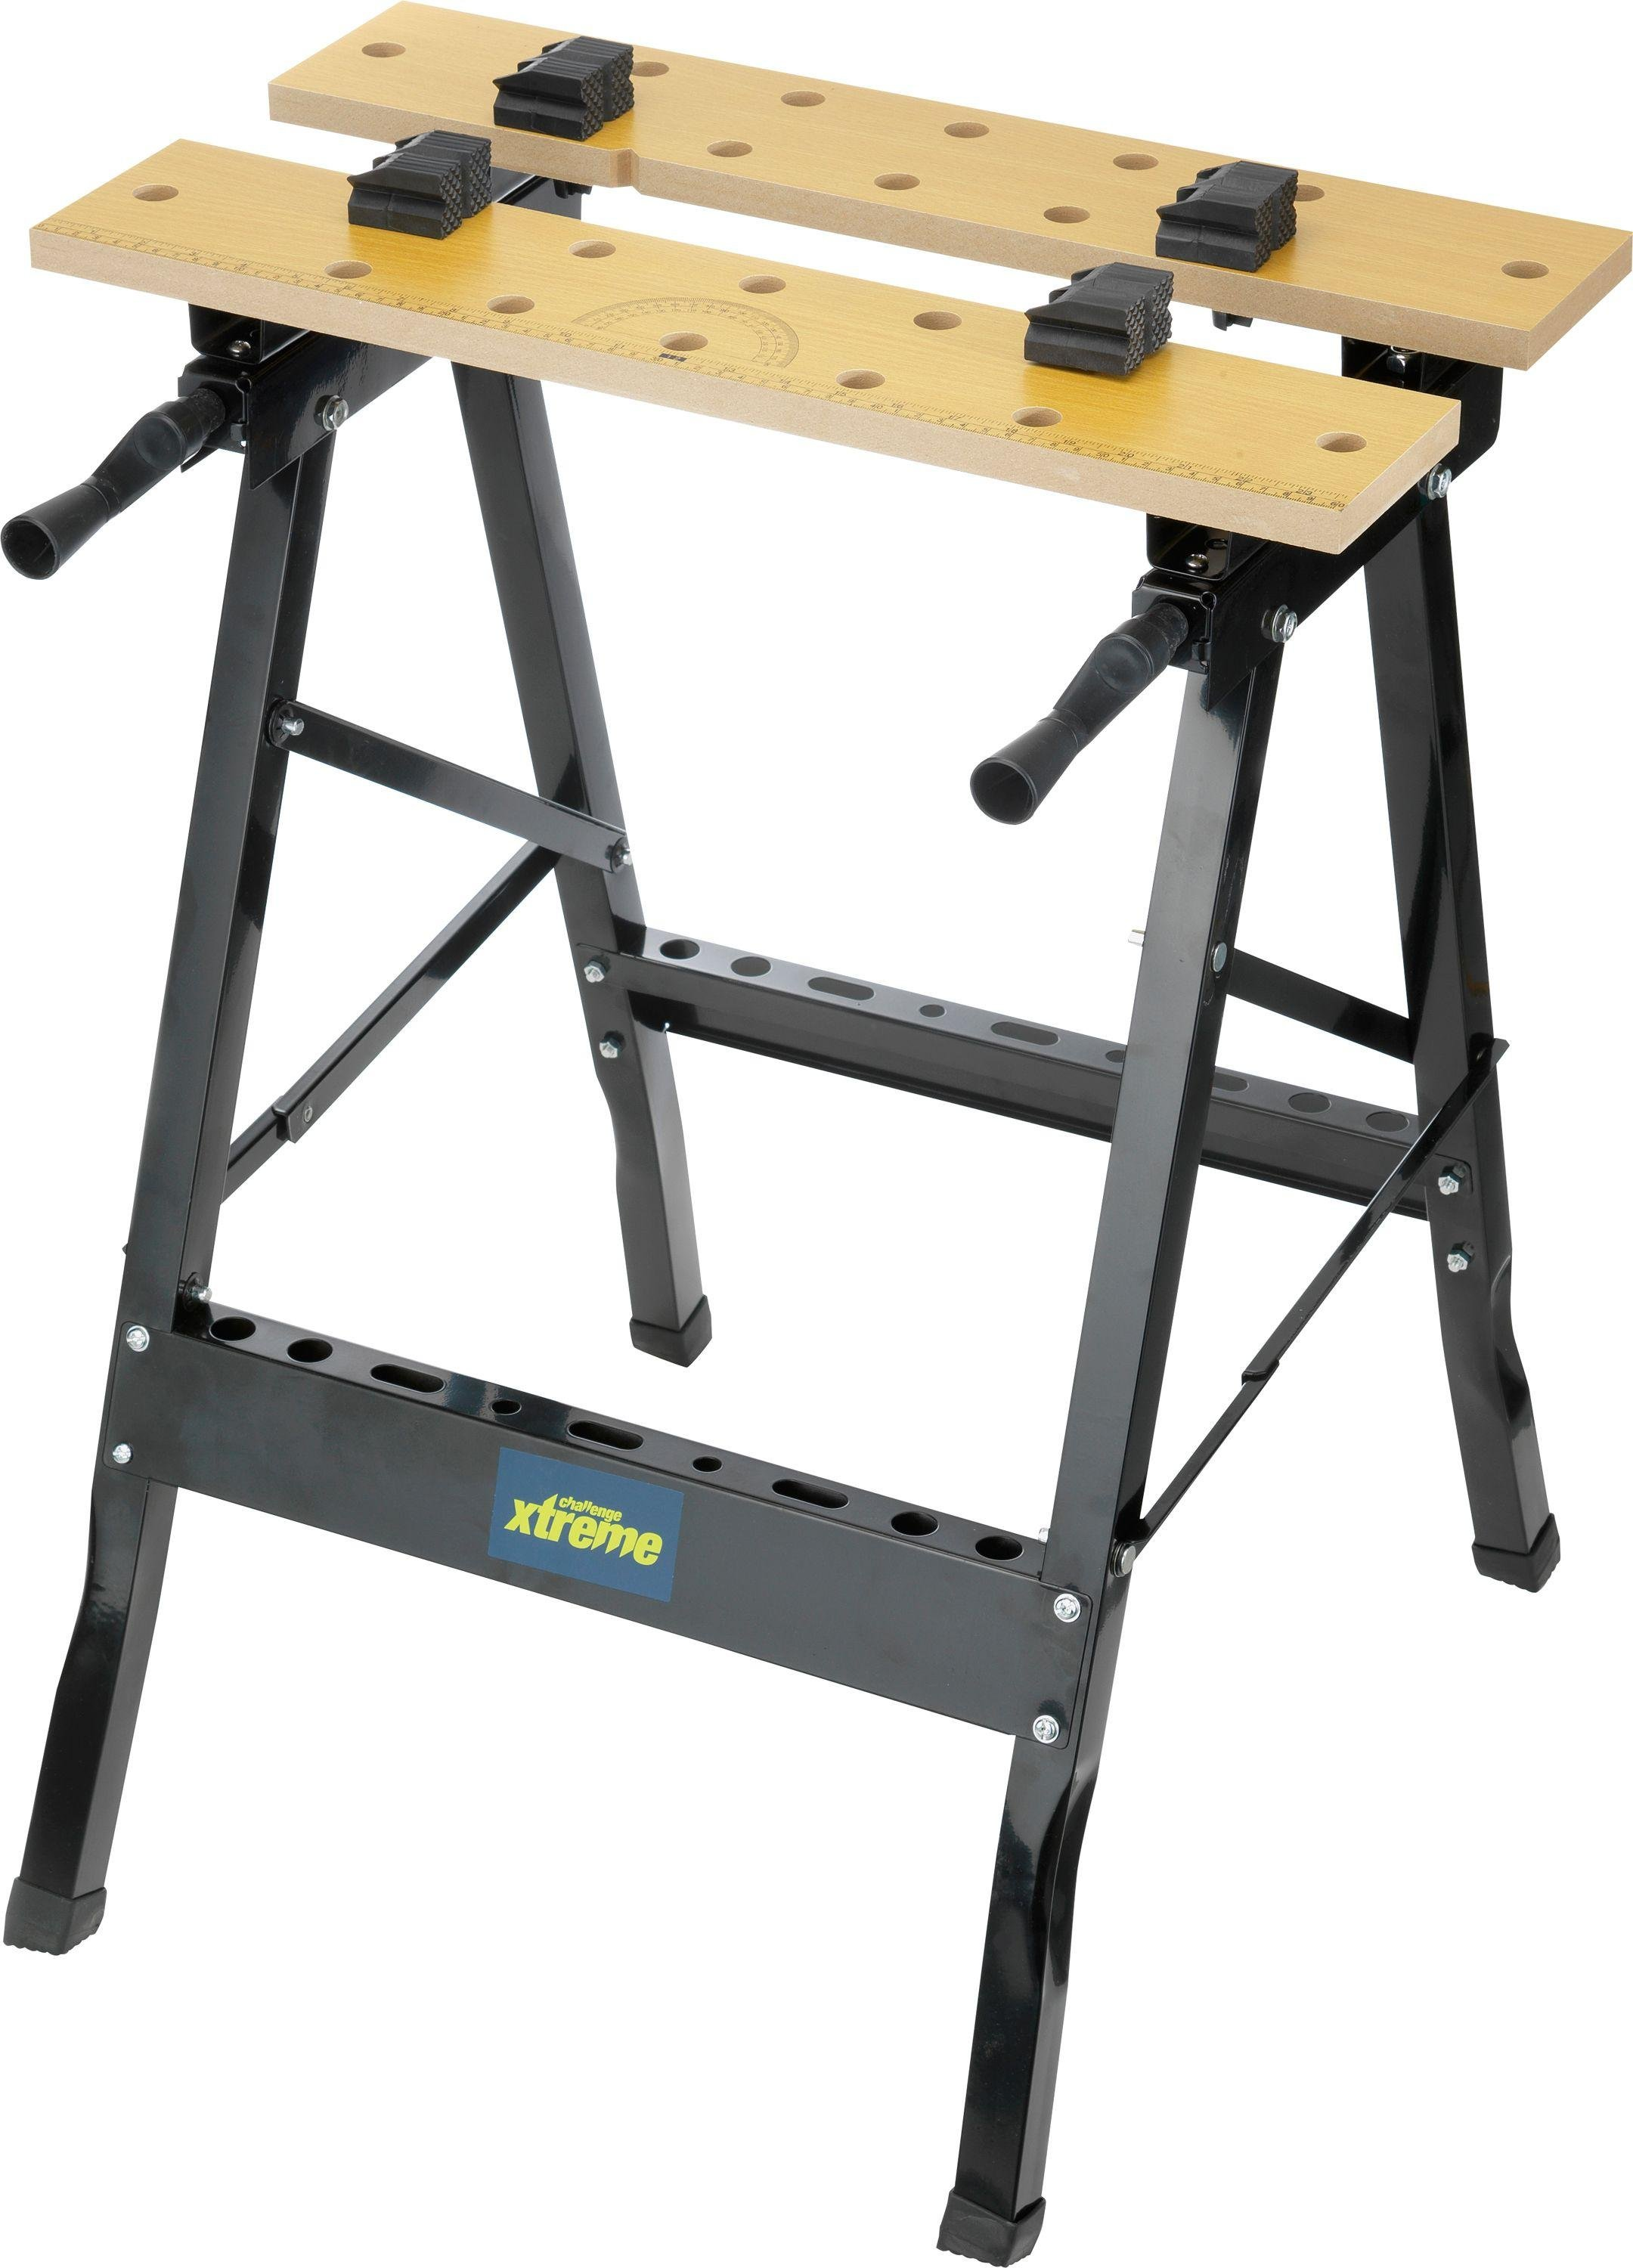 Image of Challenge Xtreme Portable Folding - Work Bench